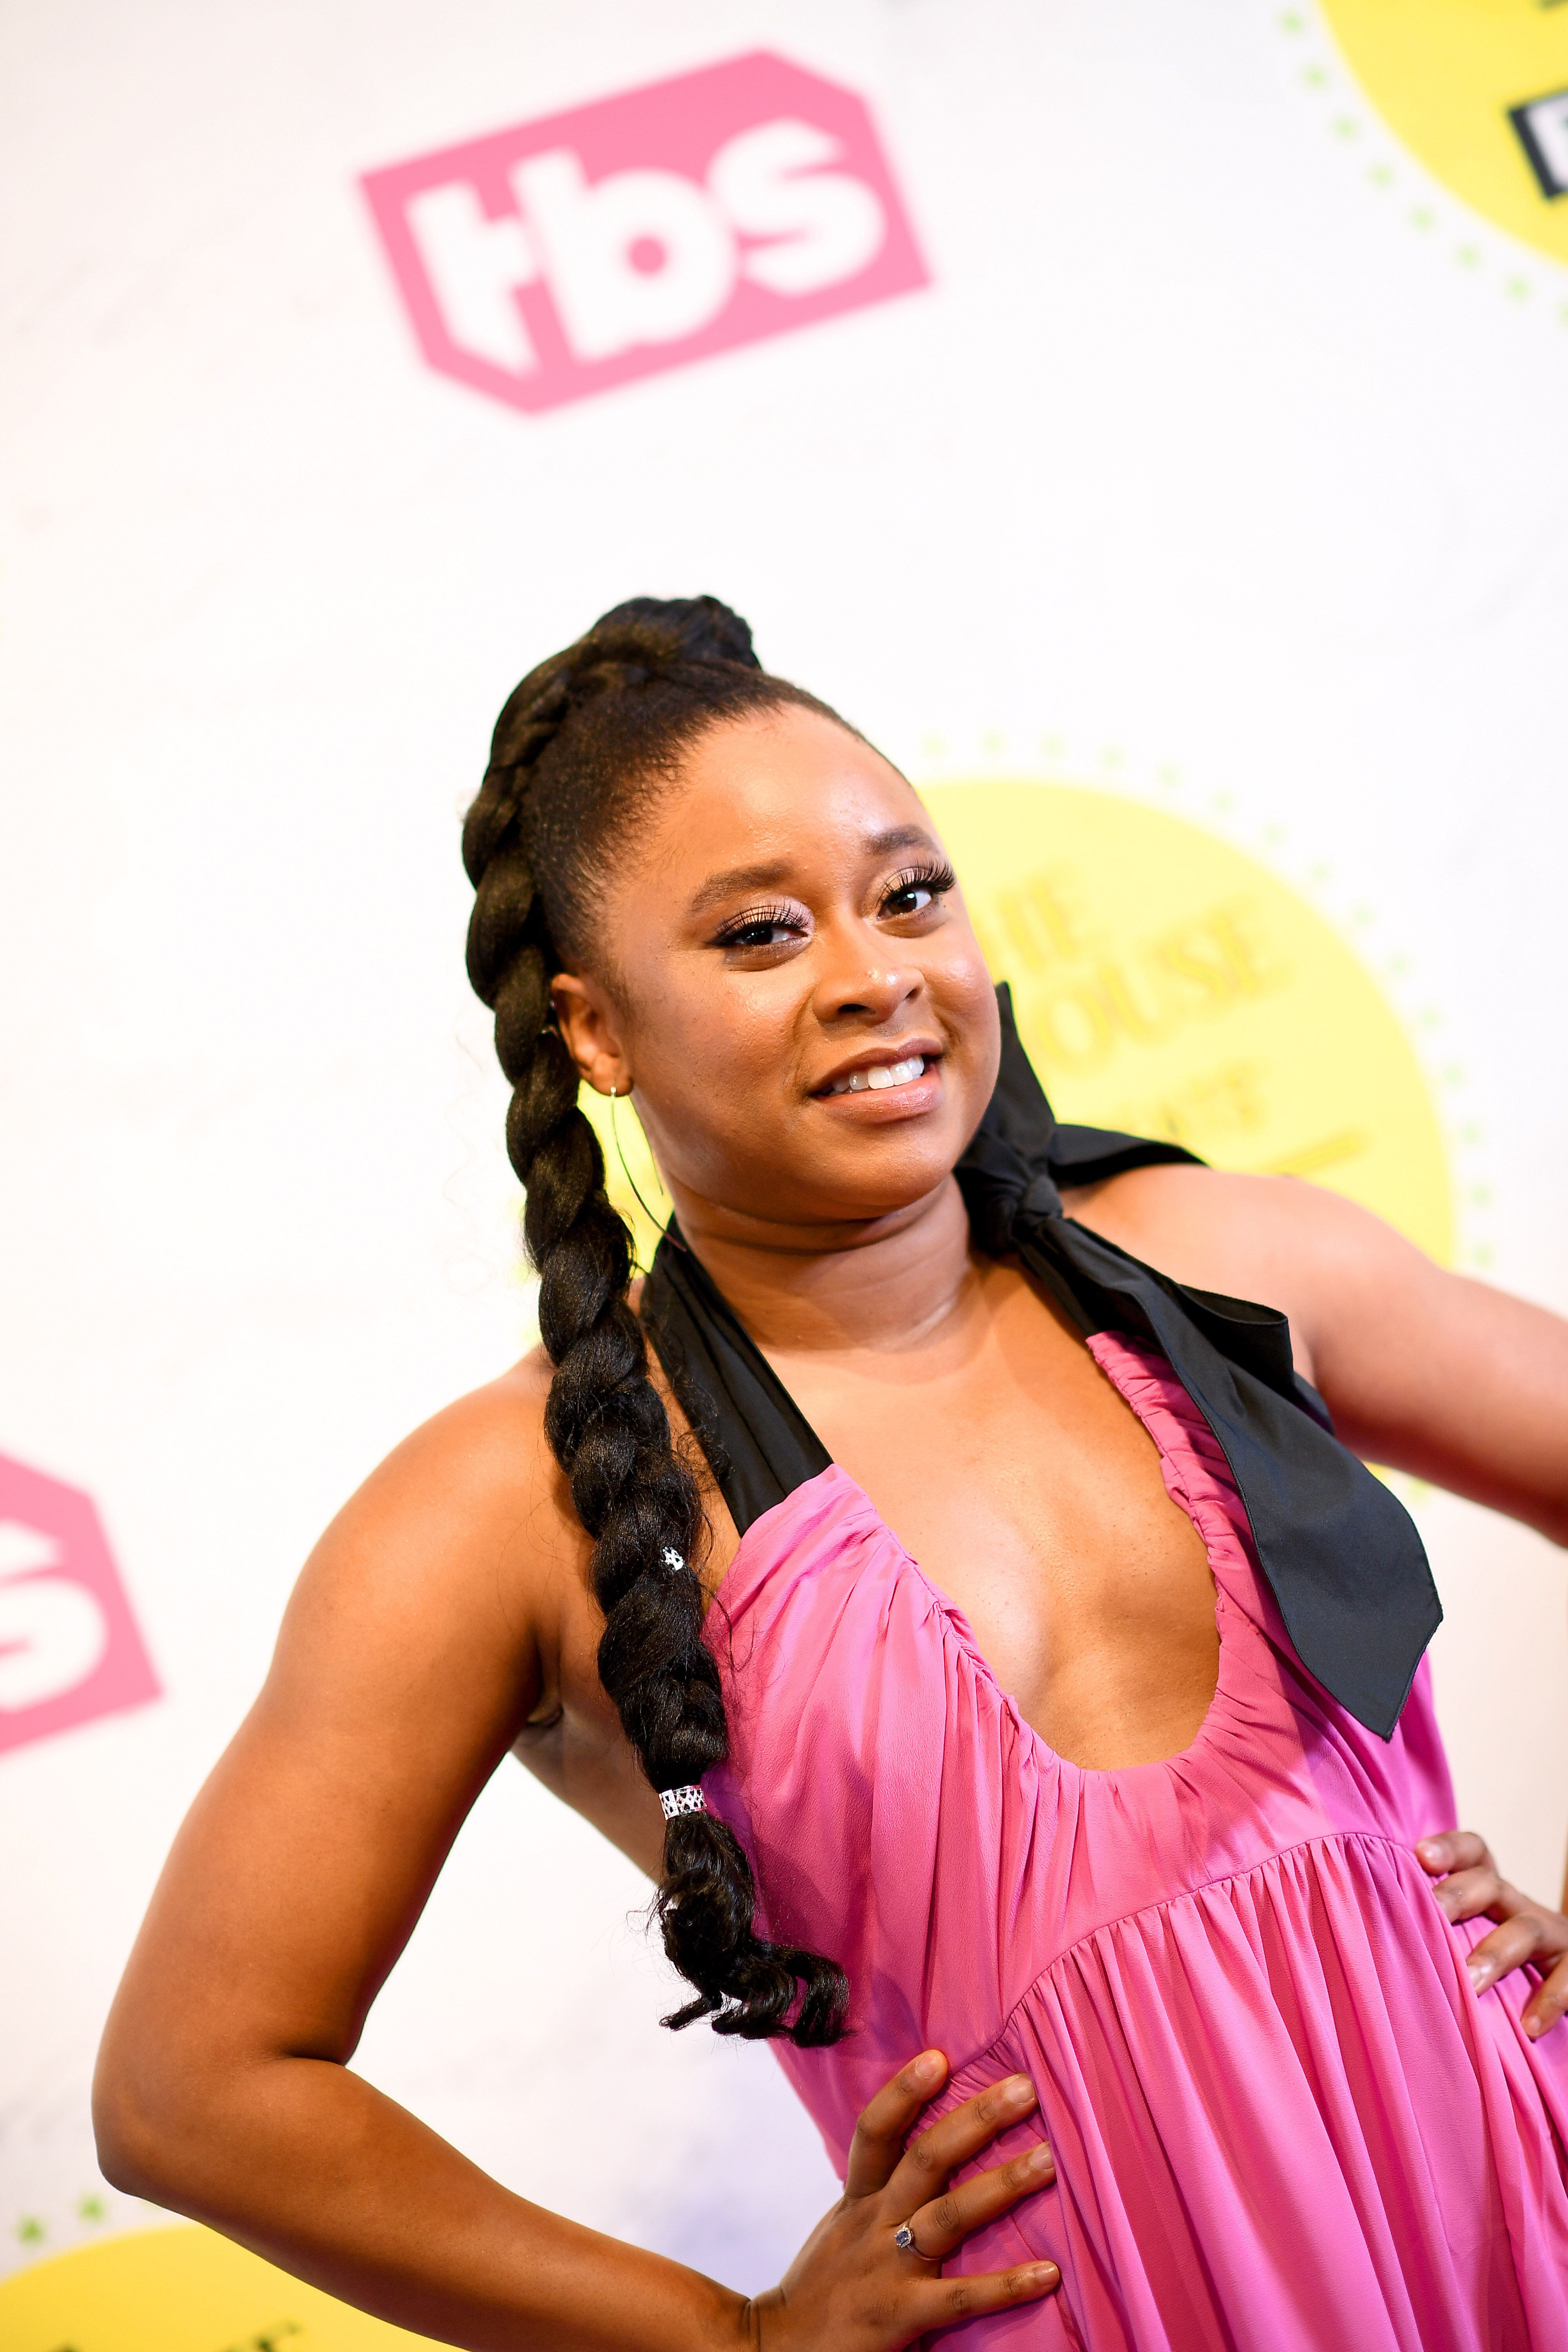 """WASHINGTON, DC - APRIL 26: Phoebe Robinson attends """"Full Frontal With Samantha Bee"""" Not The White House Correspondents Dinner at DAR Constitution Hall on April 26, 2019 in Washington, DC. (Photo by Dimitrios Kambouris/Getty Images for TBS) 558302"""